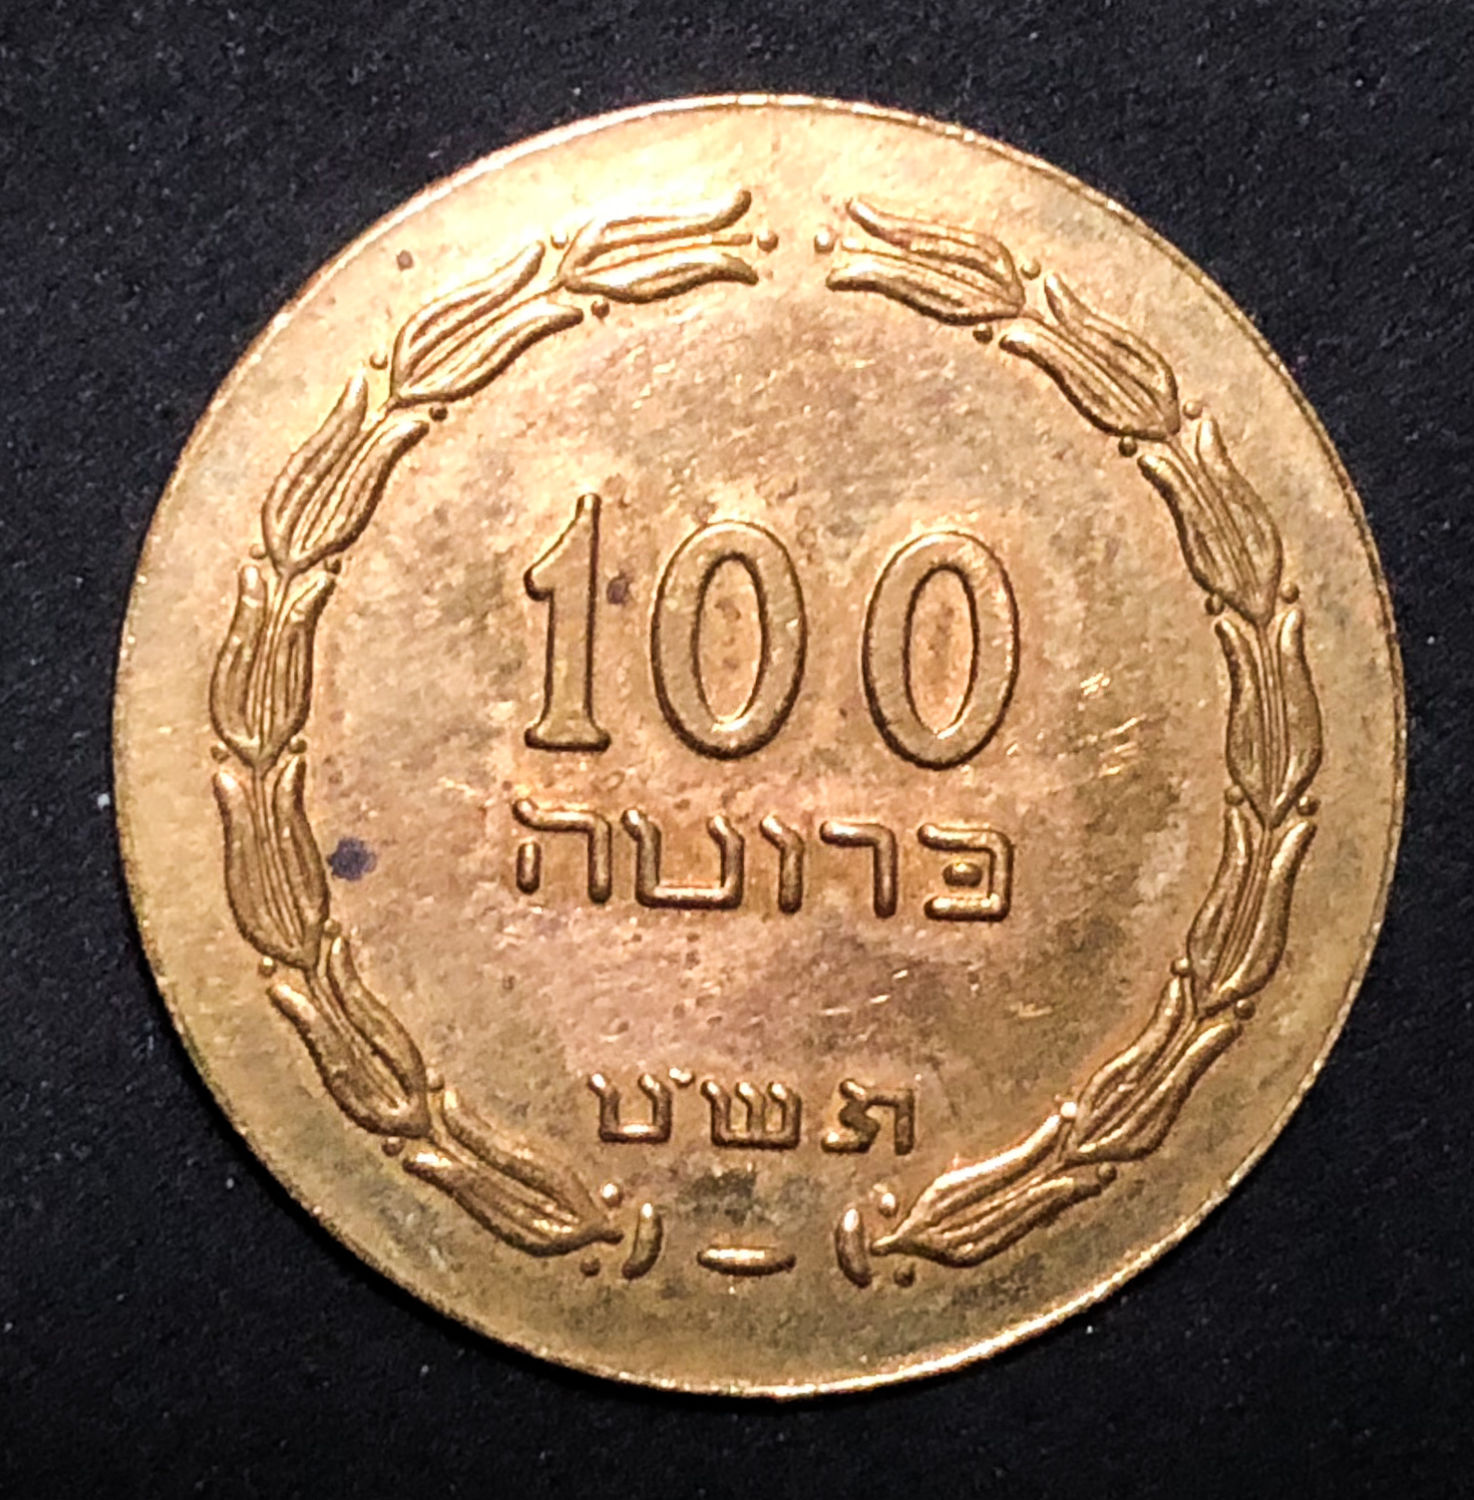 Lot 4 - Medals, Tokens.  -  yigal avrahamy Auction 03 - Coins and Banknotes of Israel and Palestine, medals and tokens.